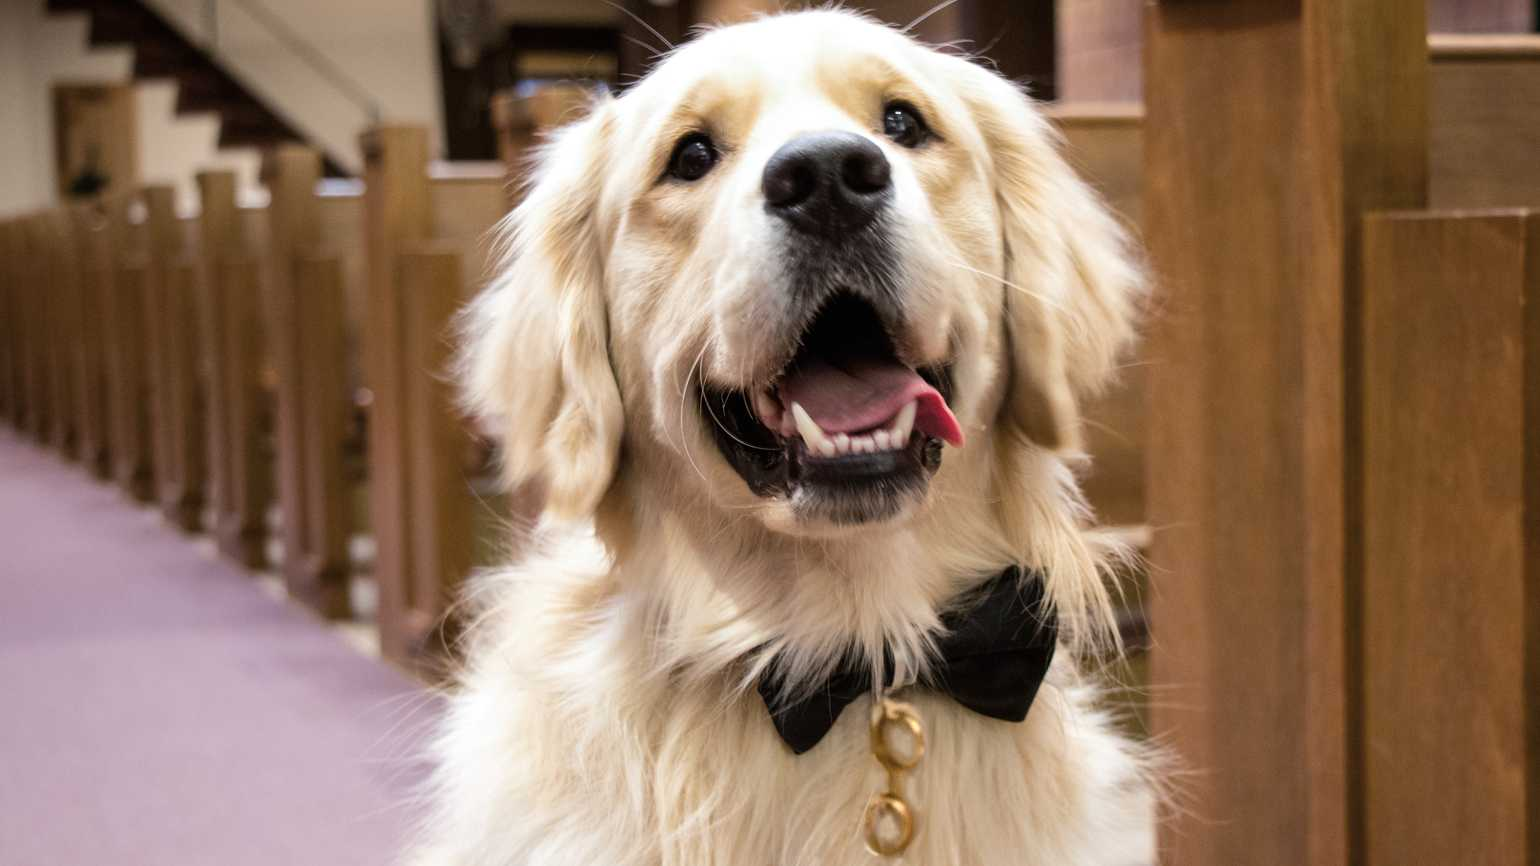 Best dog, Petey, decked out in a bow tie bearing rings.